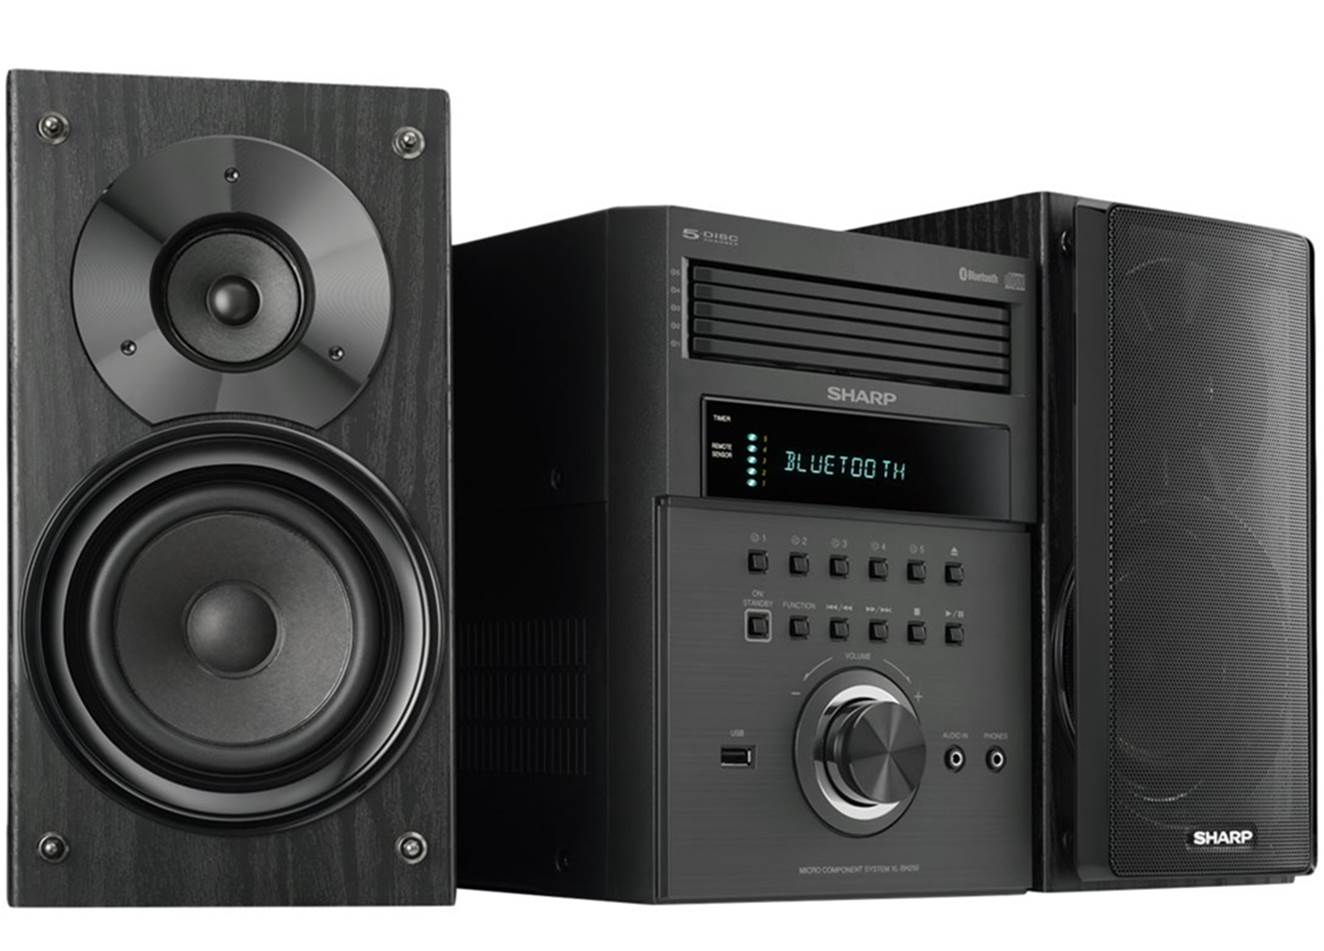 Sharp XL-BH250 Home Stereo System